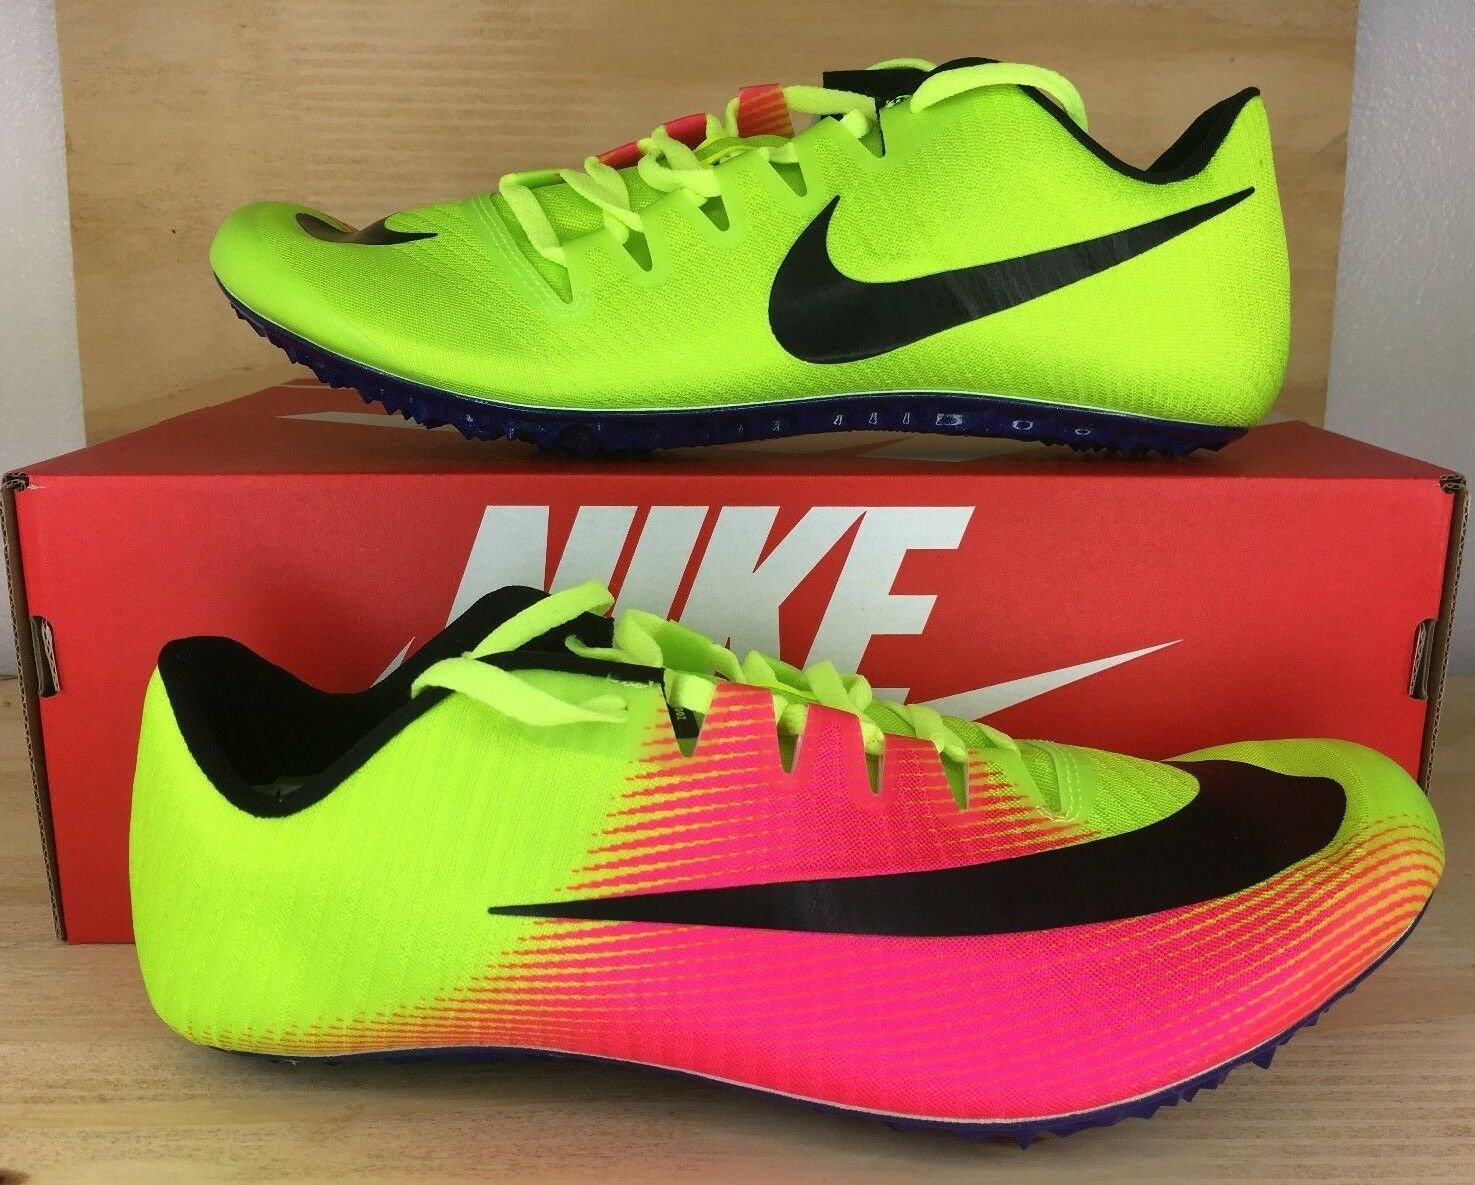 2017 New Nike Zoom Jafly 3 OC Track Field Spikes shoes 882032-999 Mens SZ 10.5